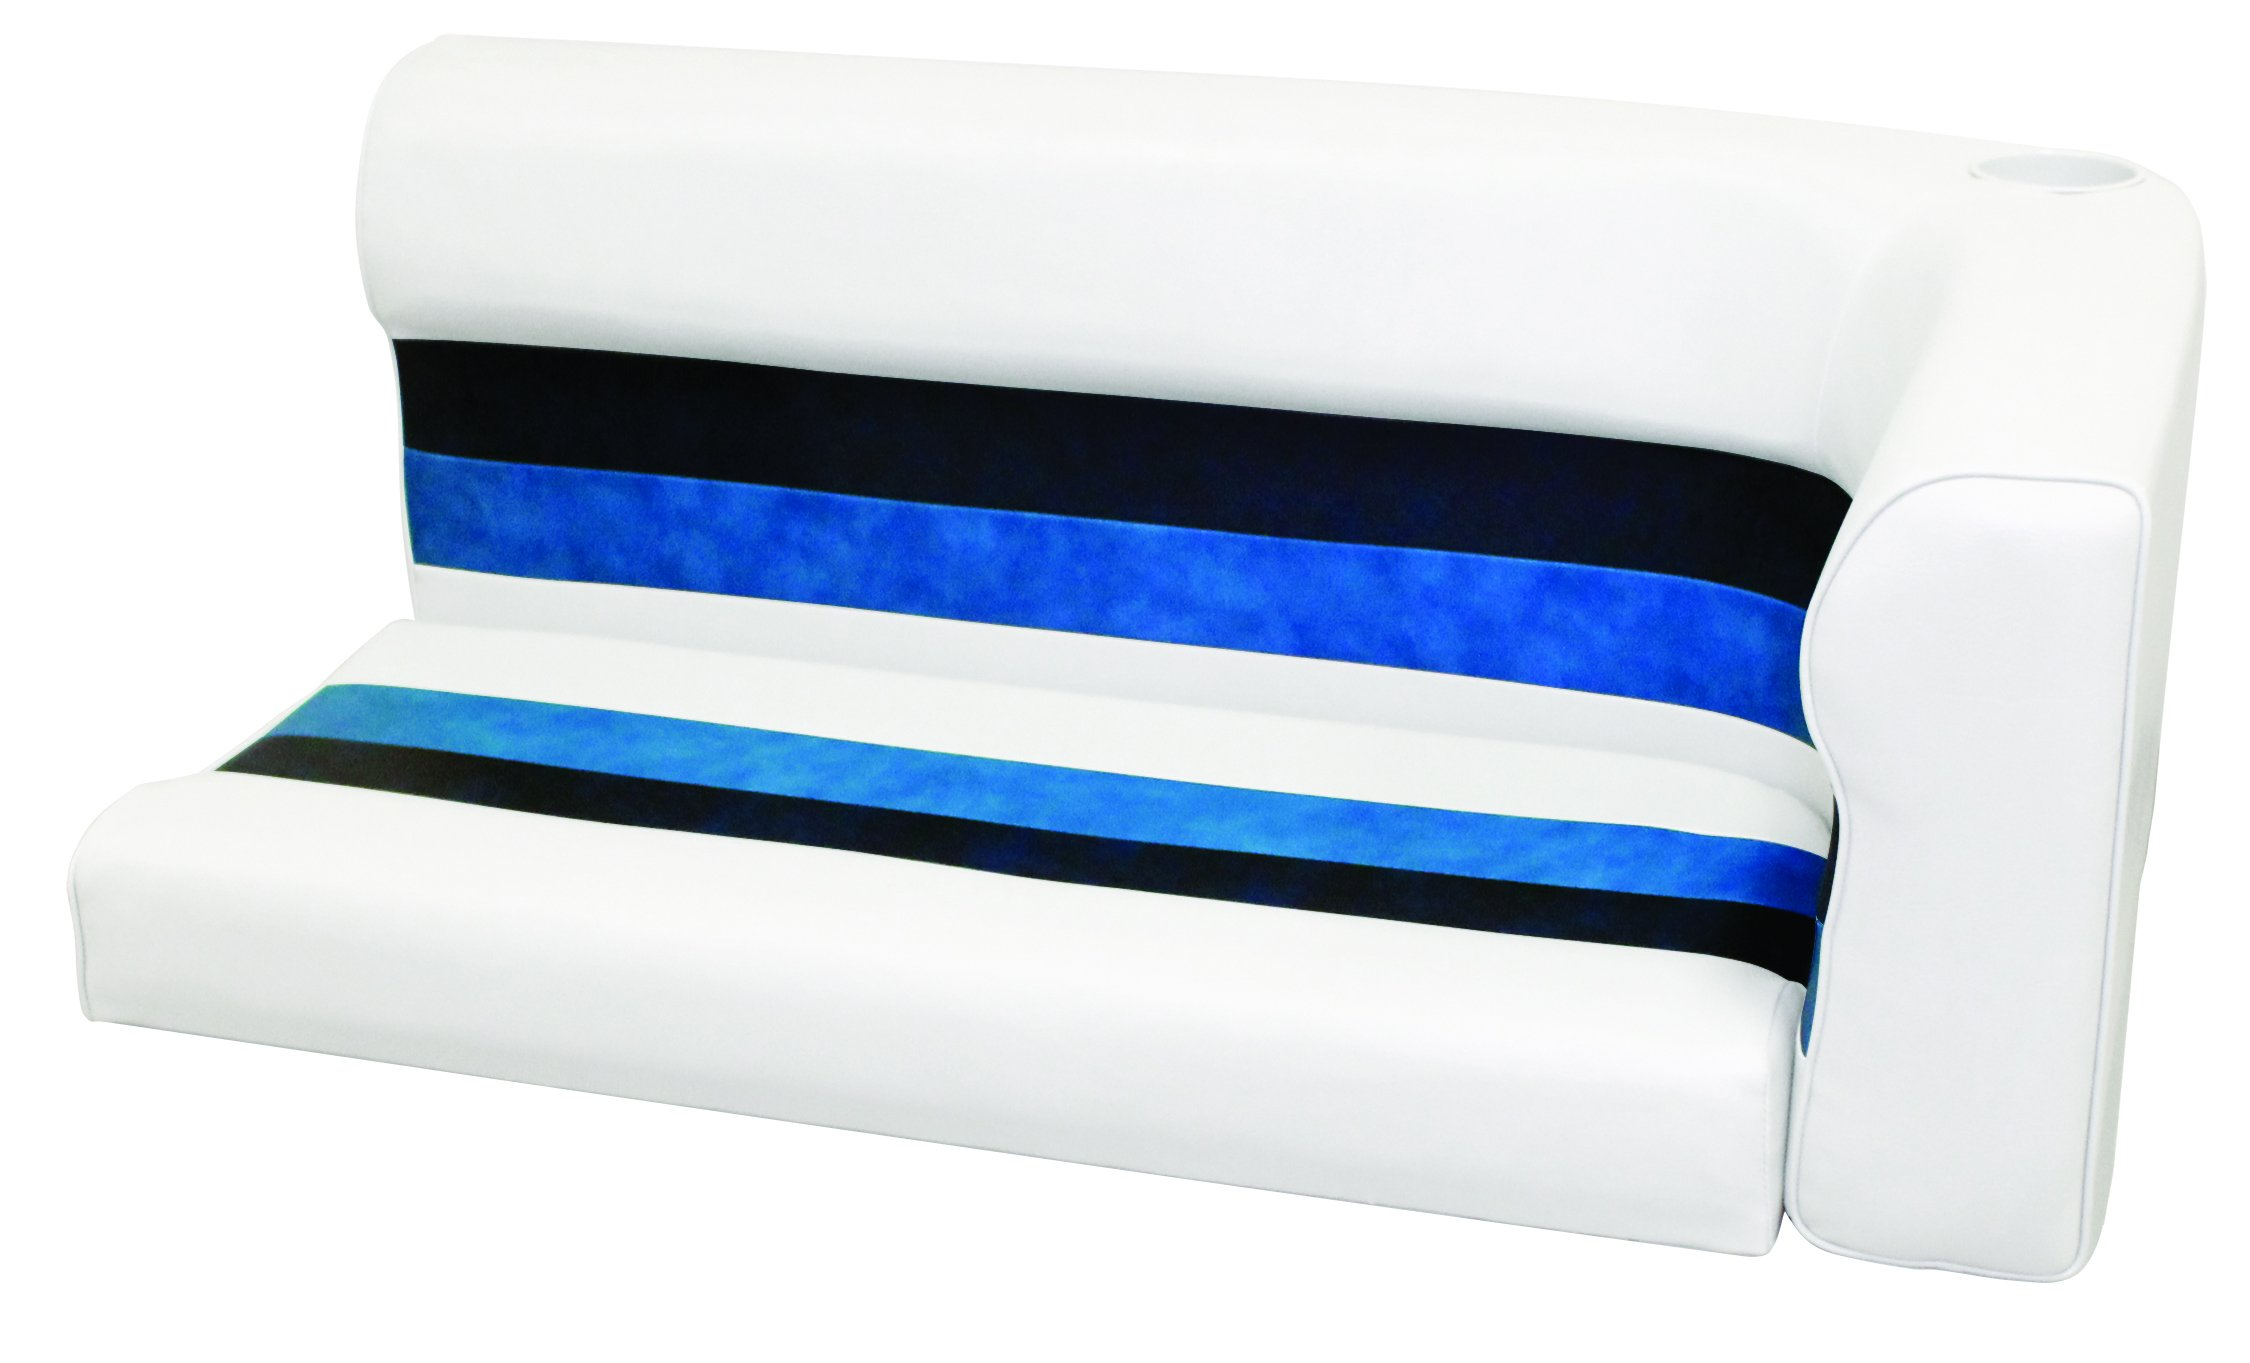 Wise 8WD107-1008 Deluxe Series Pontoon 46'' Left Corner Lounge Cushion Only, White/Navy/Blue by THE WISE COMPANY, INC.